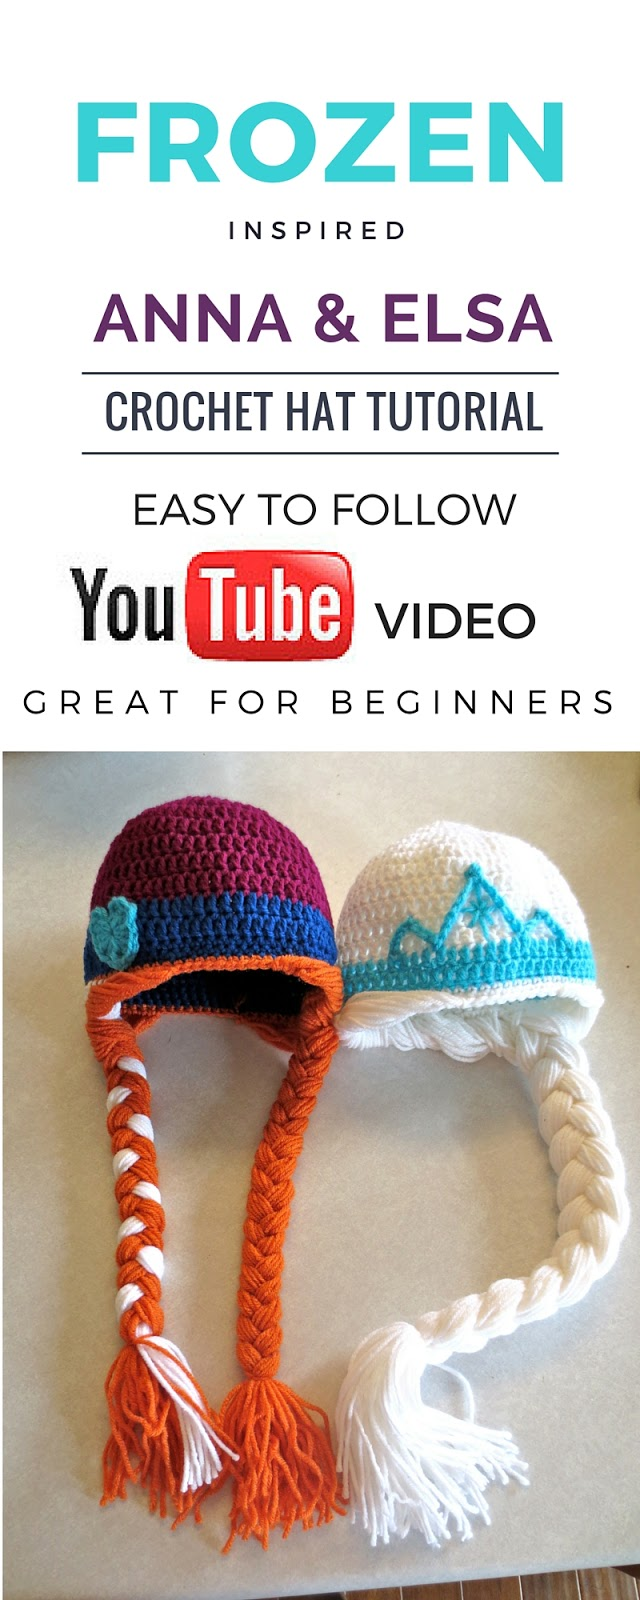 Free Frozen Inspired Anna And Elsa Crochet Hat Tutorial